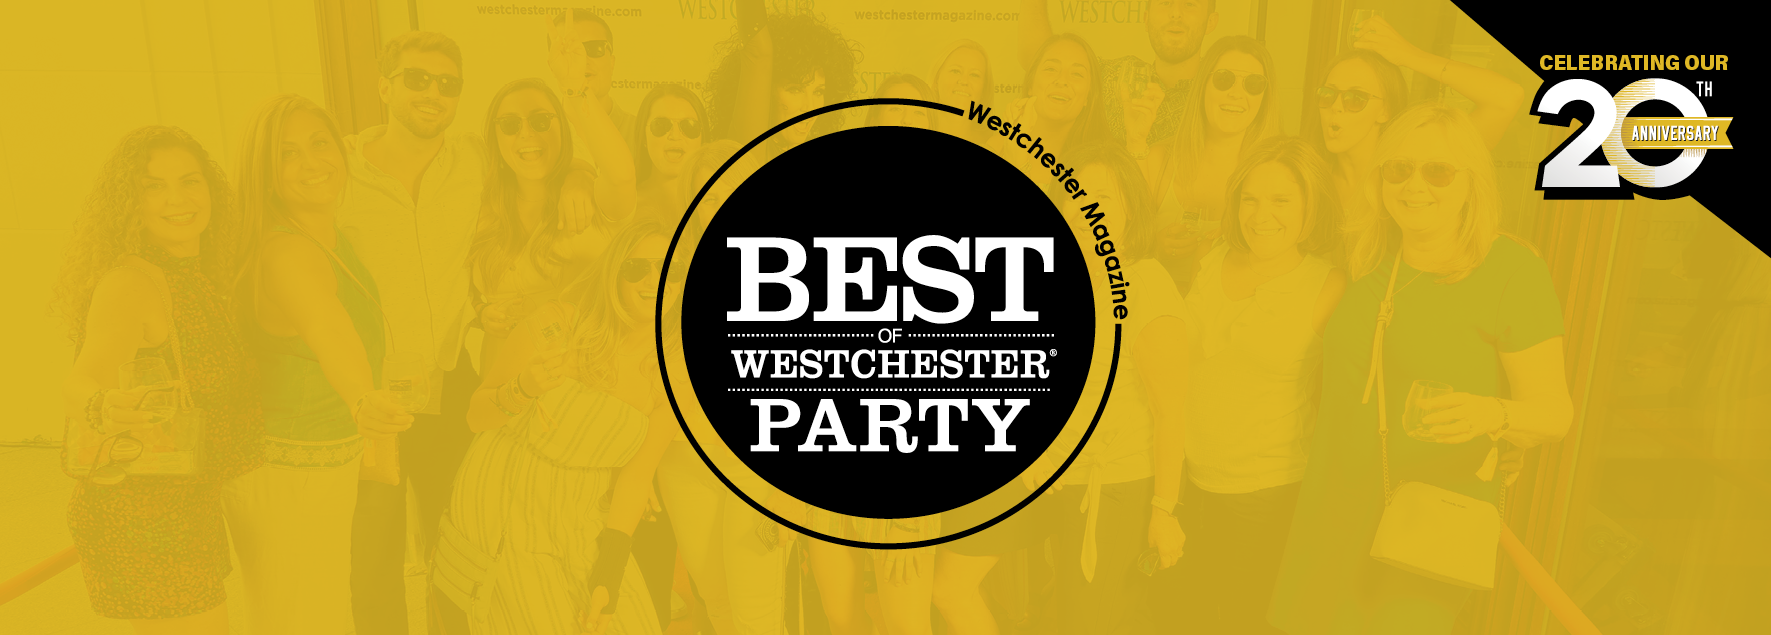 Tickets for 2021 Best of Westchester Party in New Rochelle from ShowClix